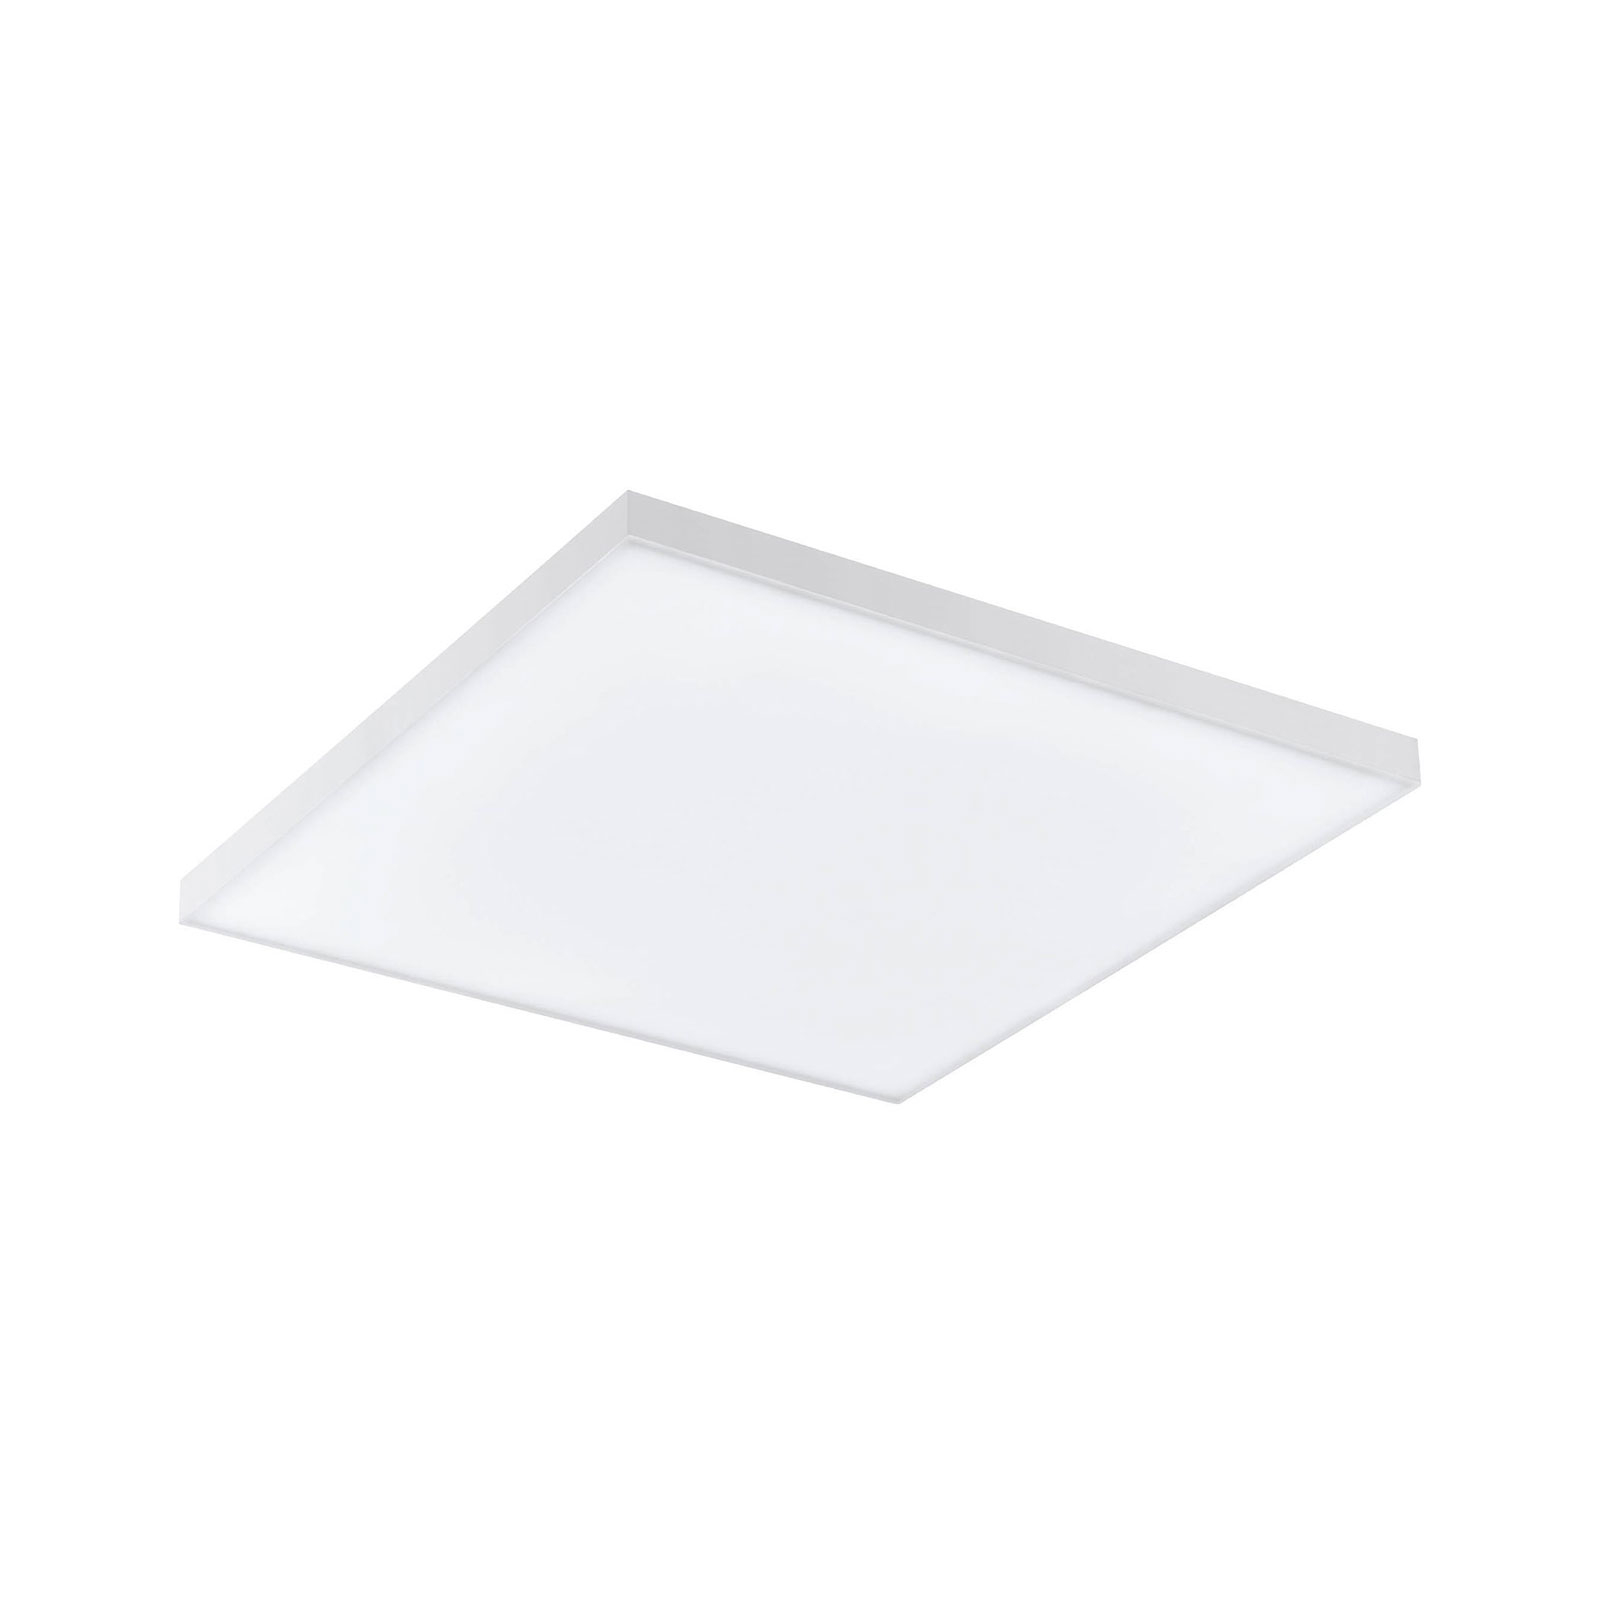 EGLO connect Turcona-C LED-taklampe 30x30 cm